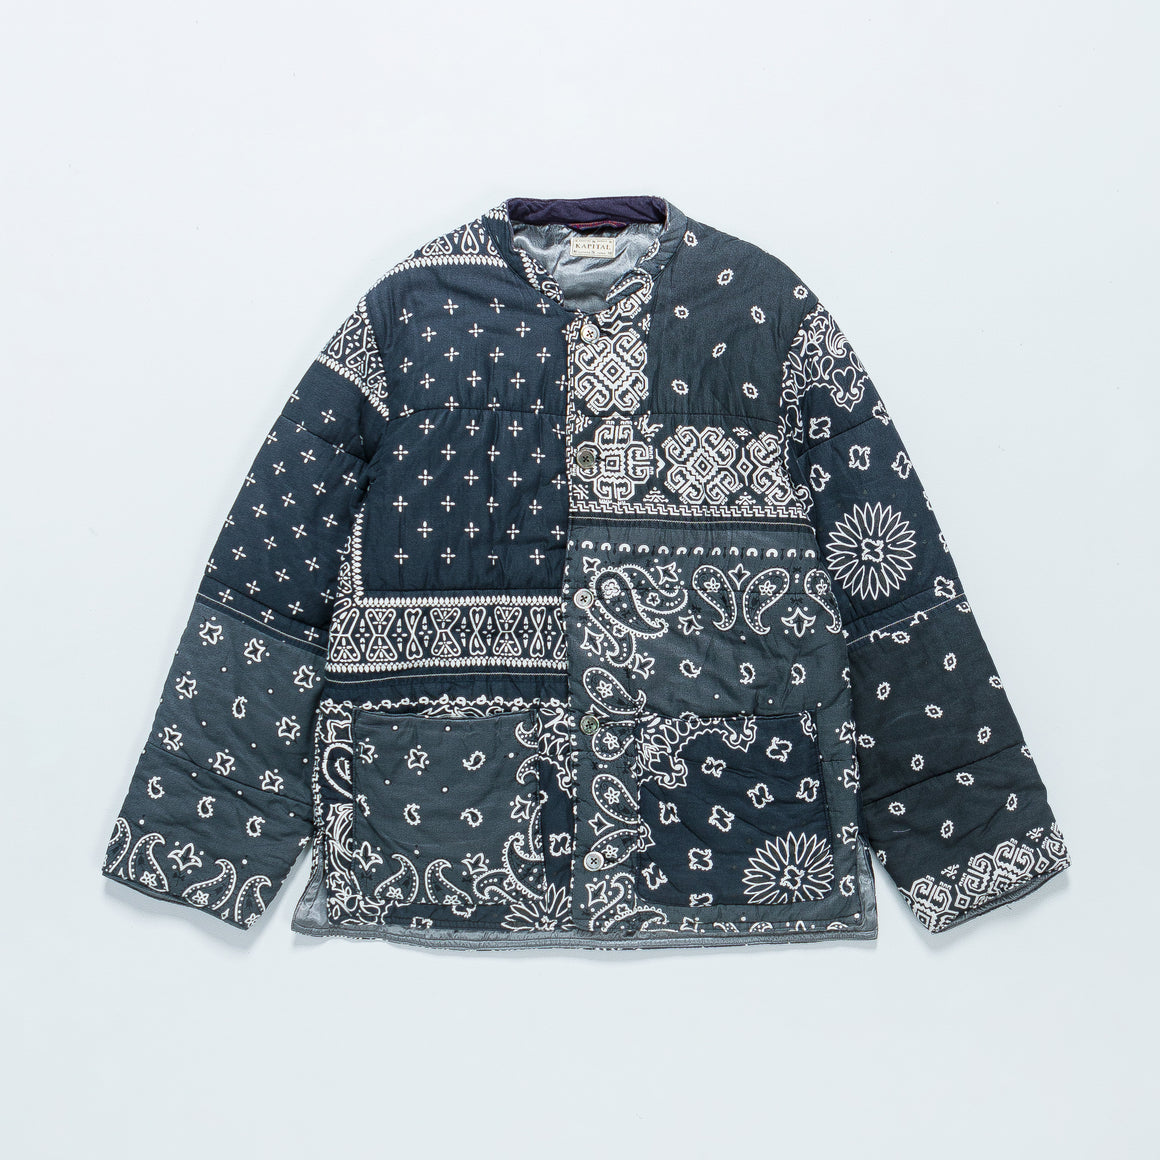 Kapital - Gauze Bandana Patchwork Quilt Samu Work Blouson - Black - Up There